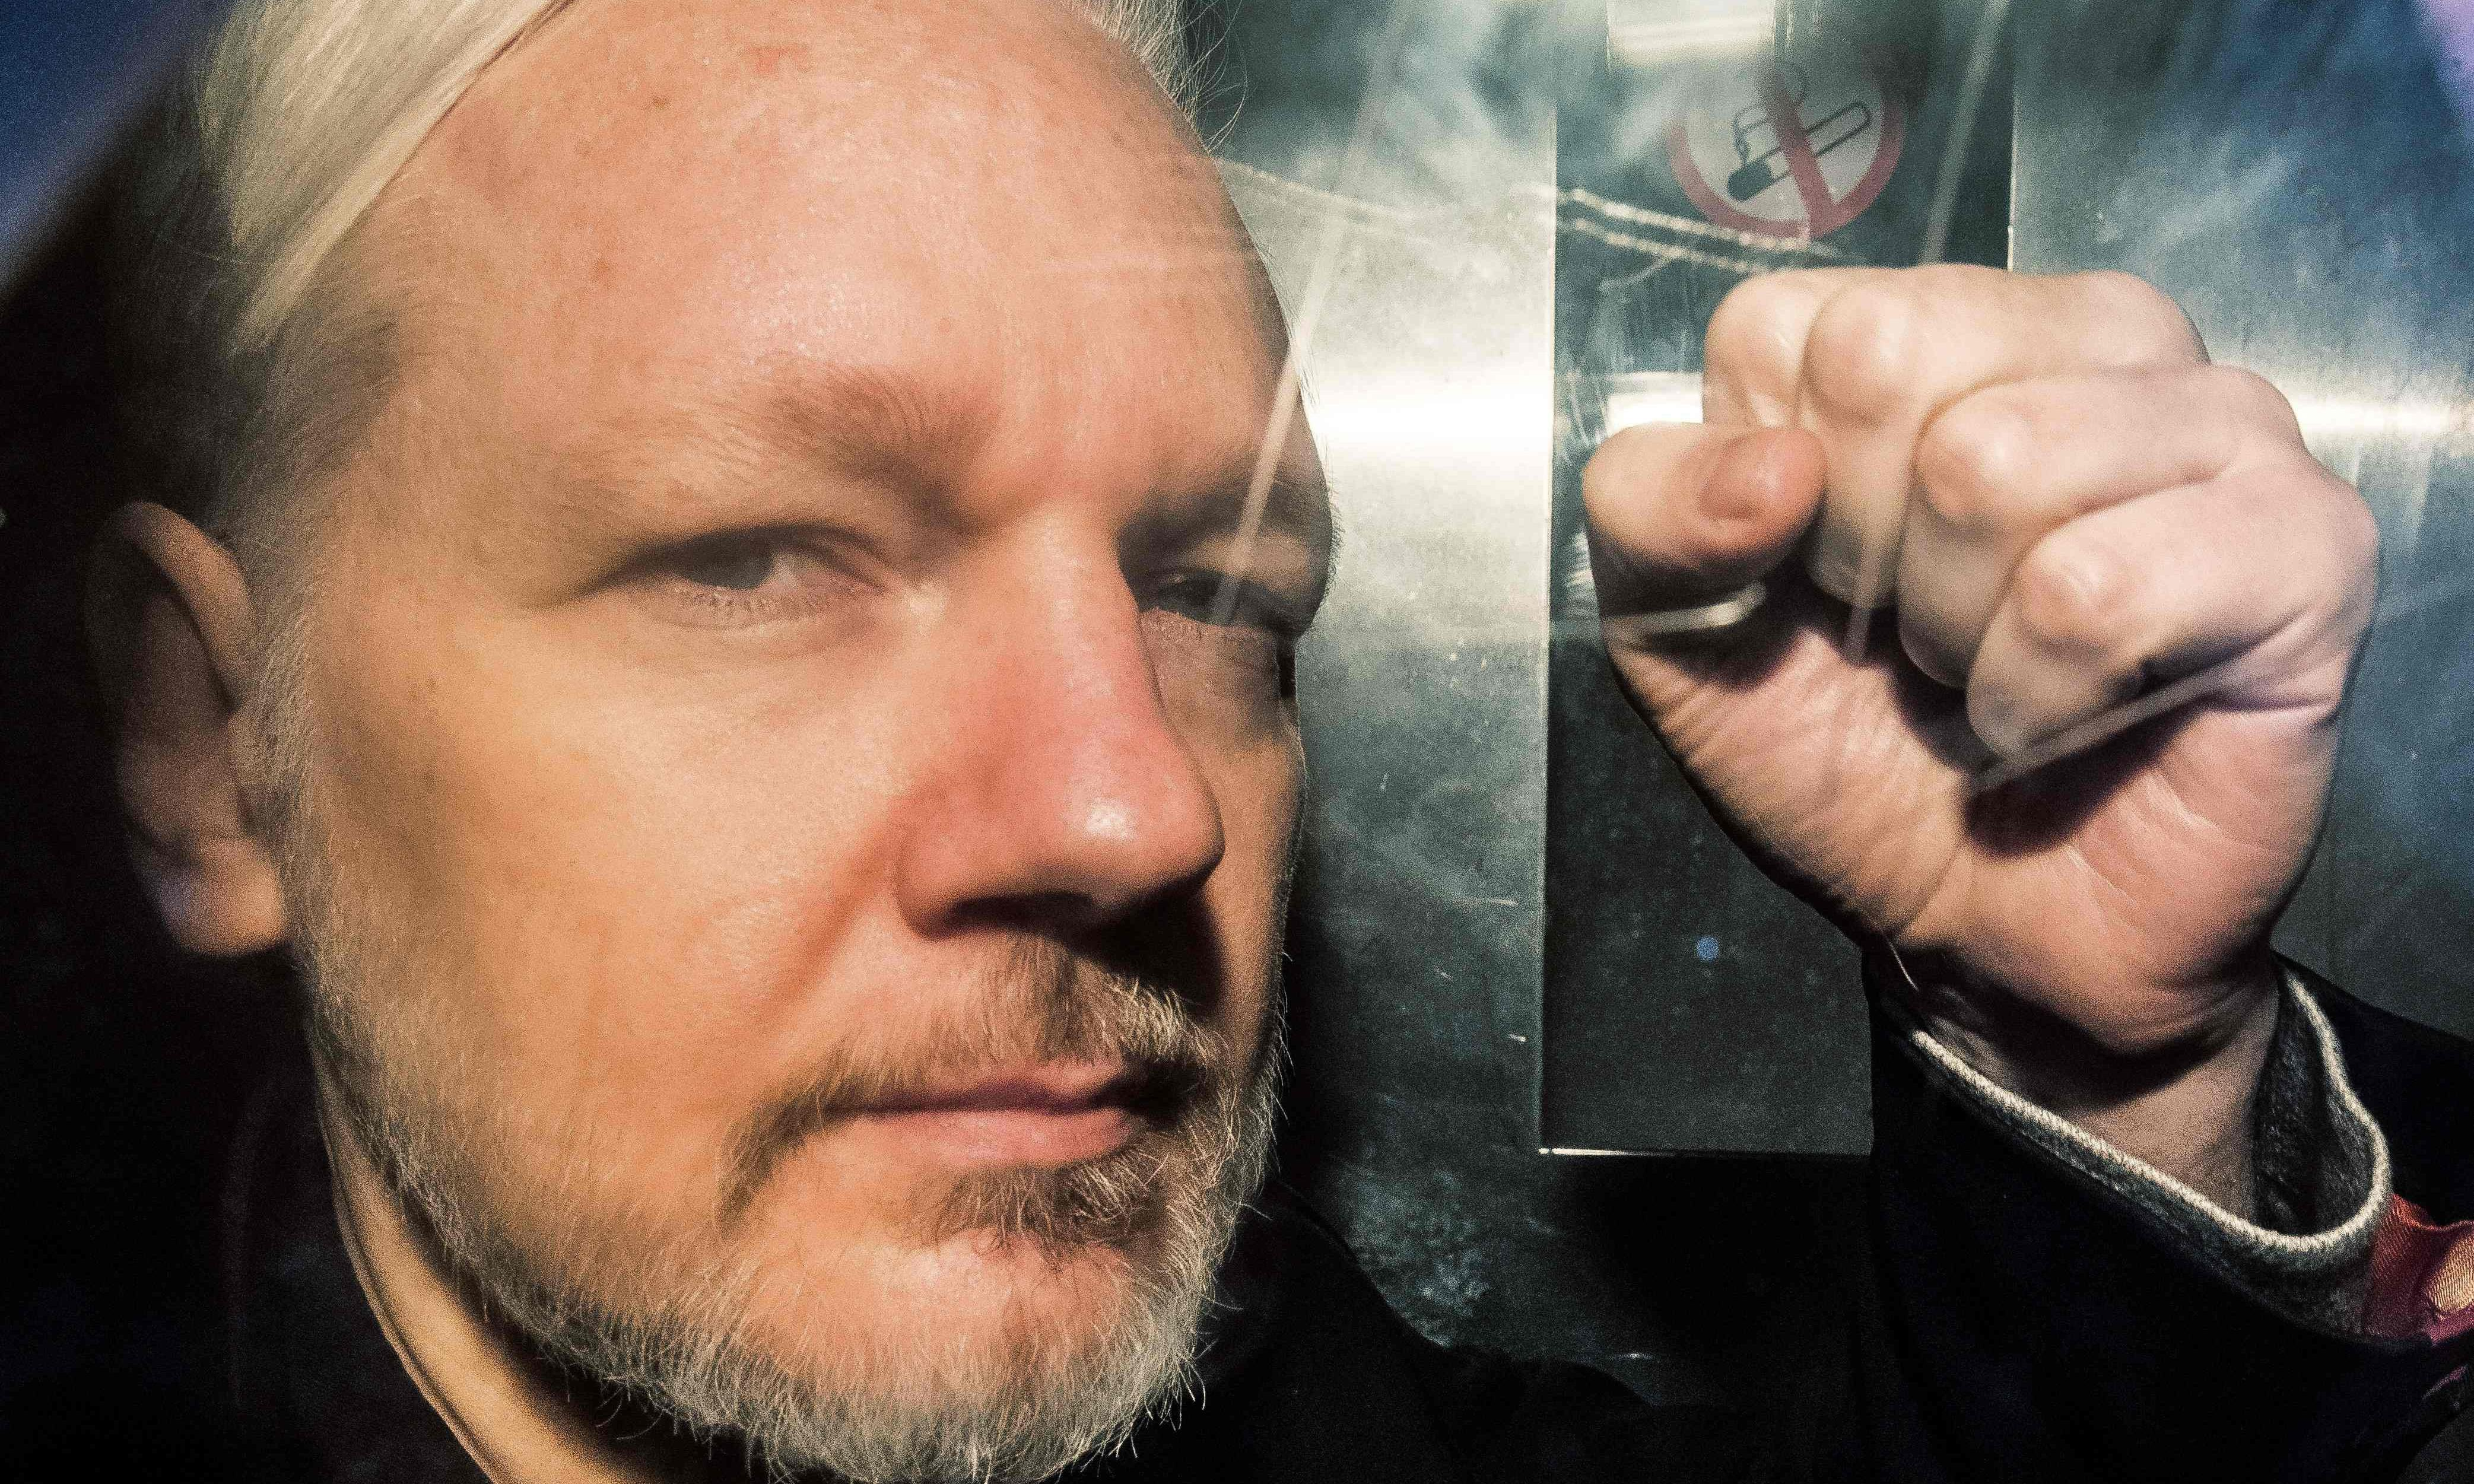 The Guardian view on Julian Assange: send him to Sweden